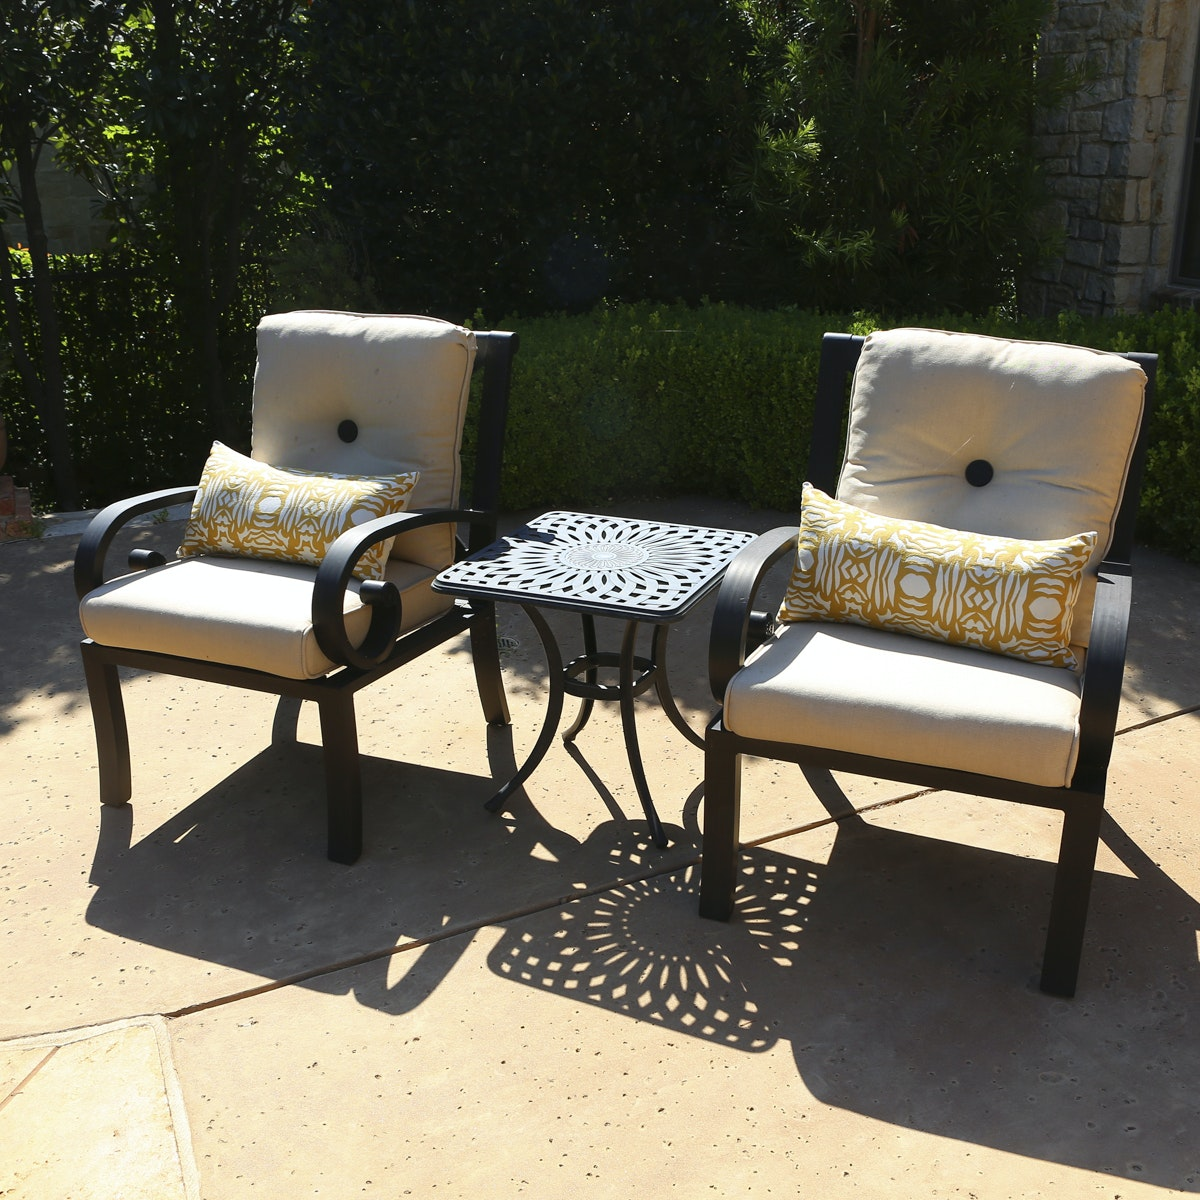 Pair of Patio Chairs and Side Table